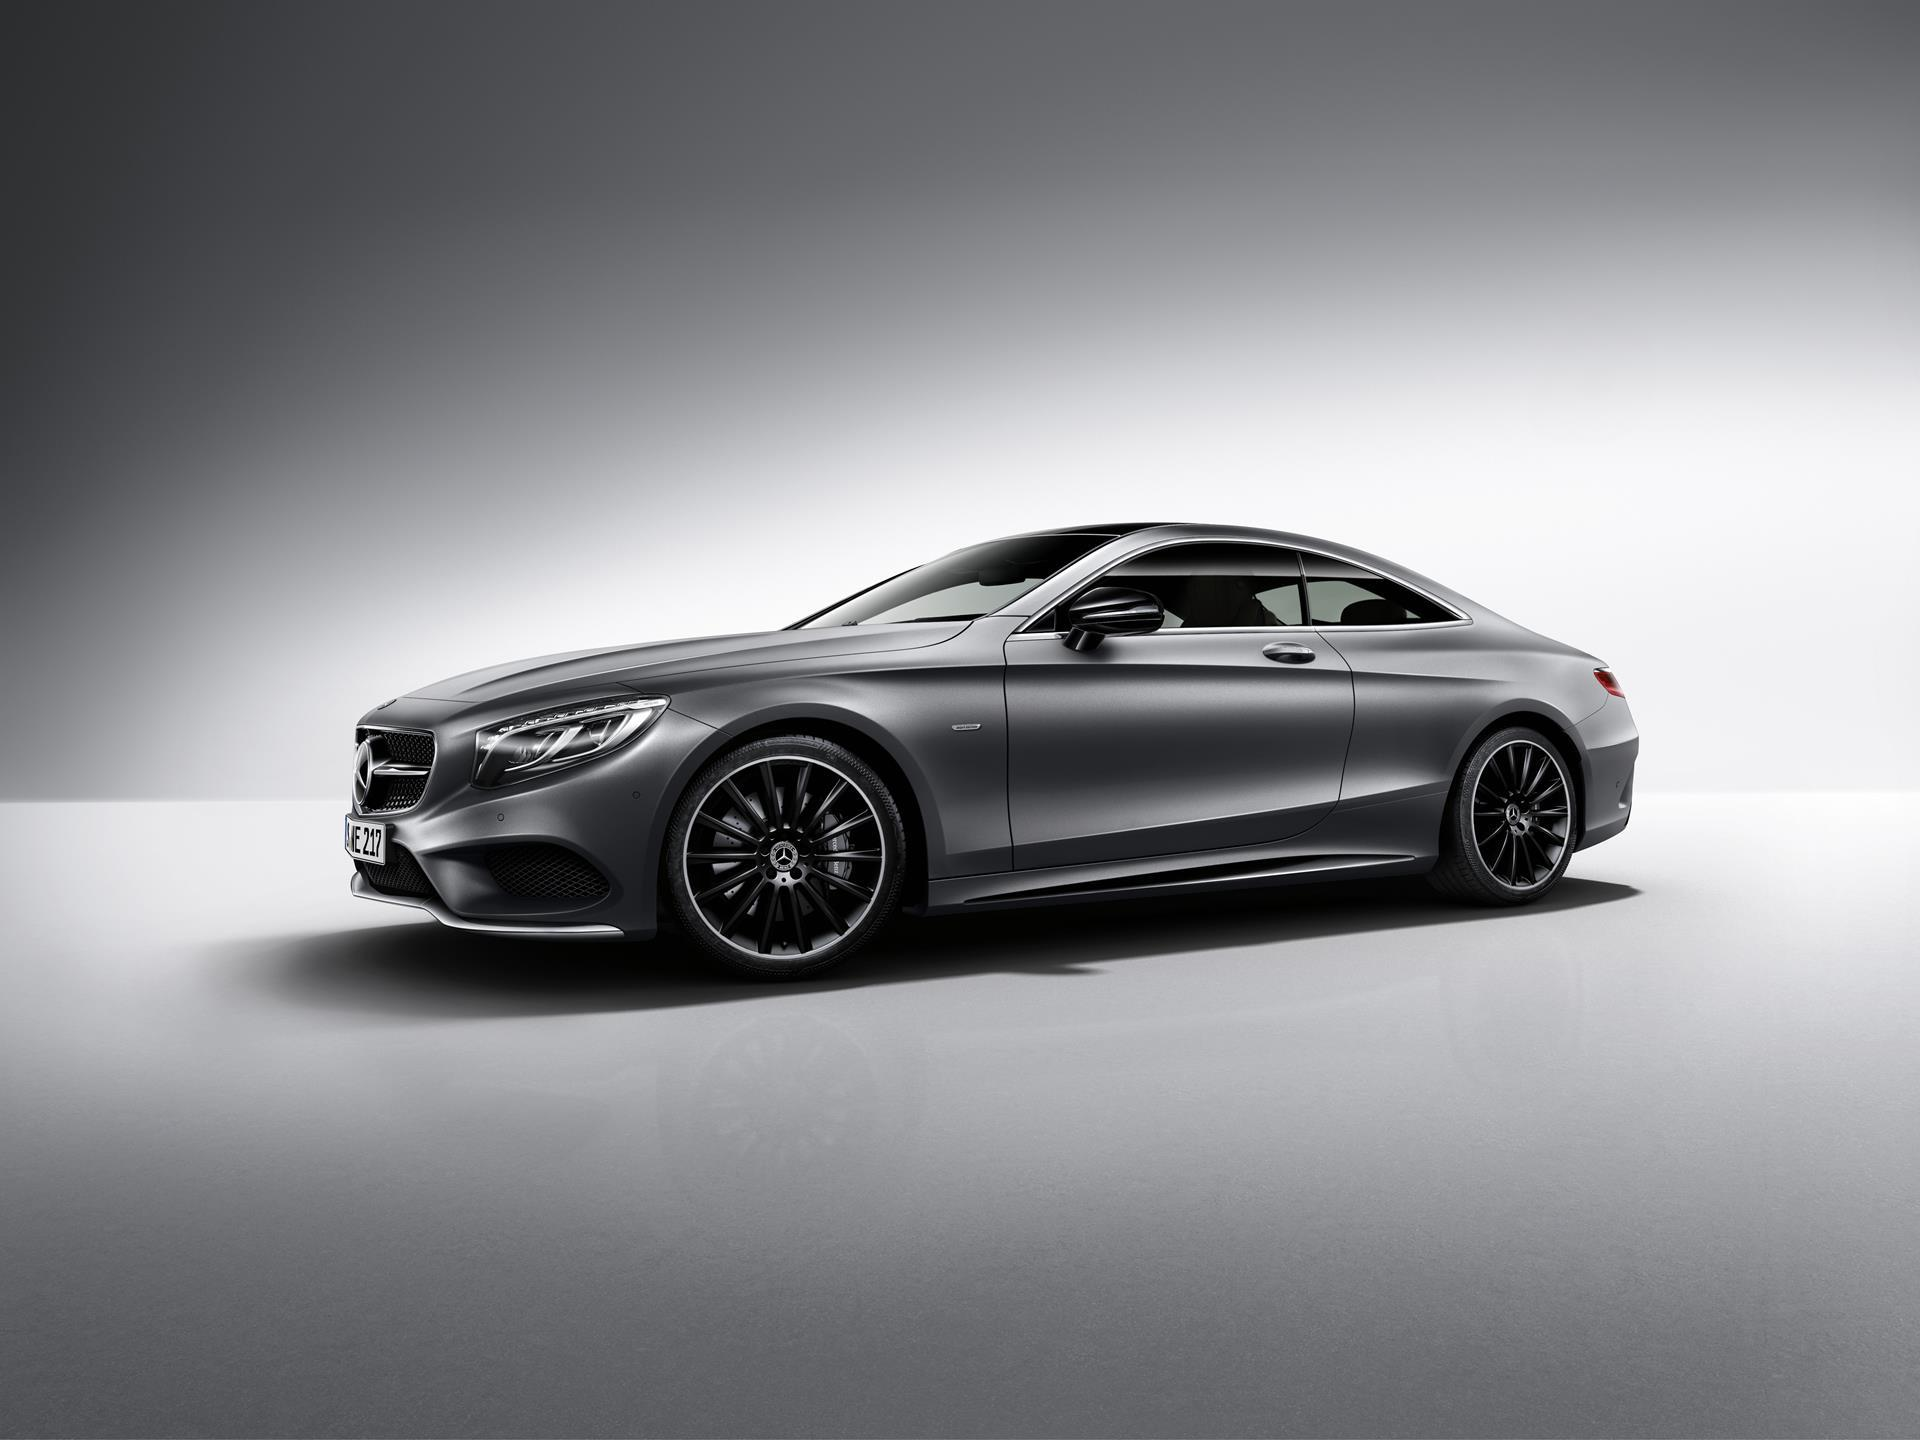 2017 Mercedes Benz S Class Coupe Night Edition Wallpaper And Image